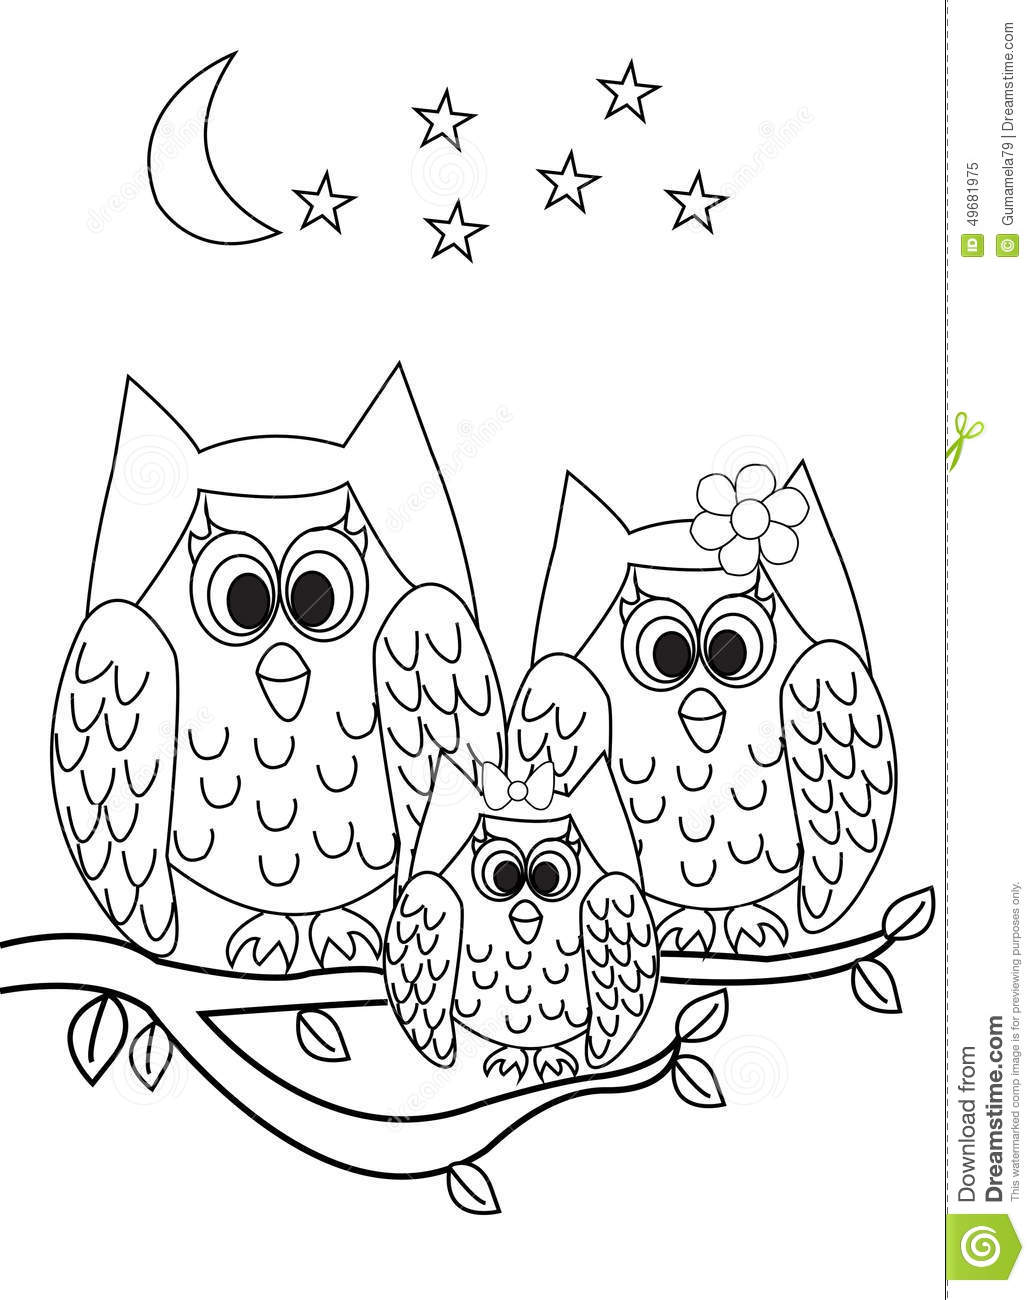 Coloring Page Book Owl Stock Illustration Illustration Of Contour